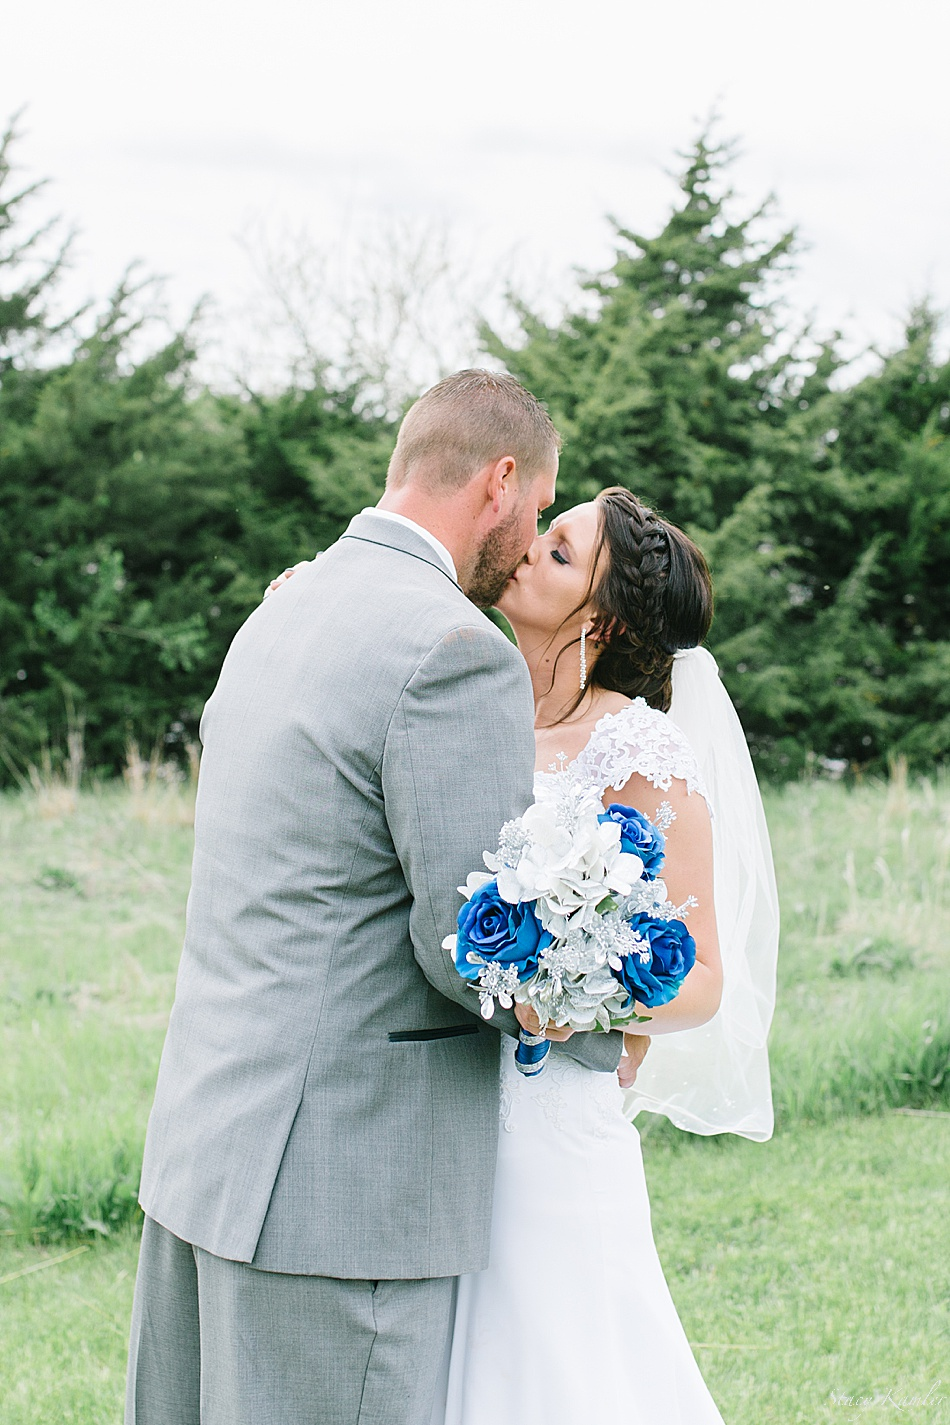 Bride and Groom with Blue bouquet, kissing